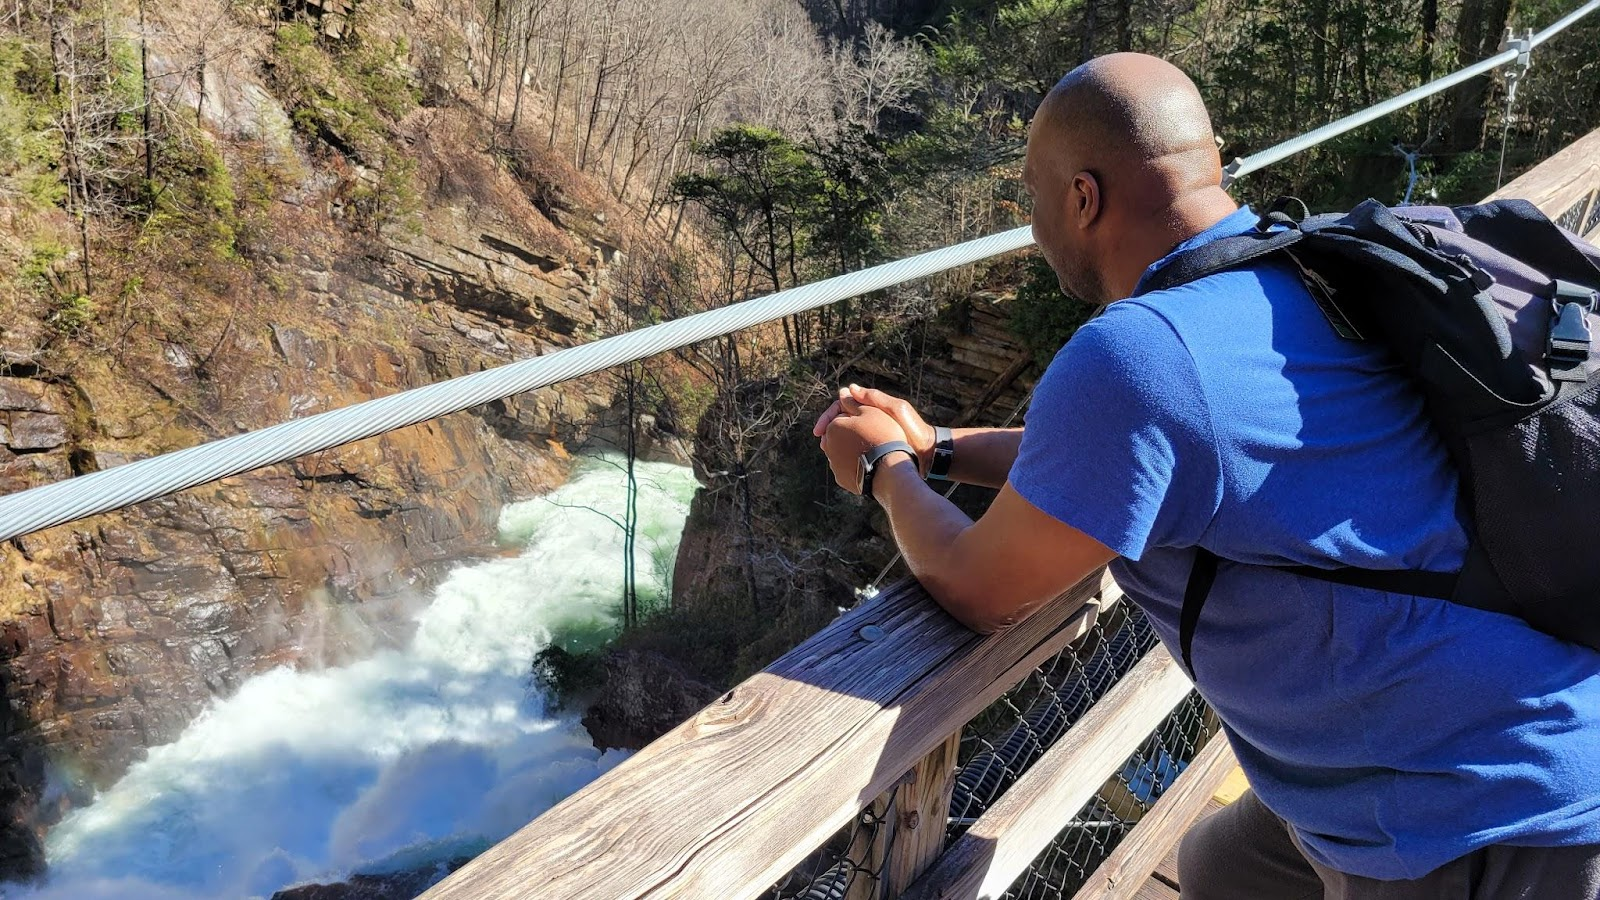 Man looks out into a waterfall while standing on a bridge